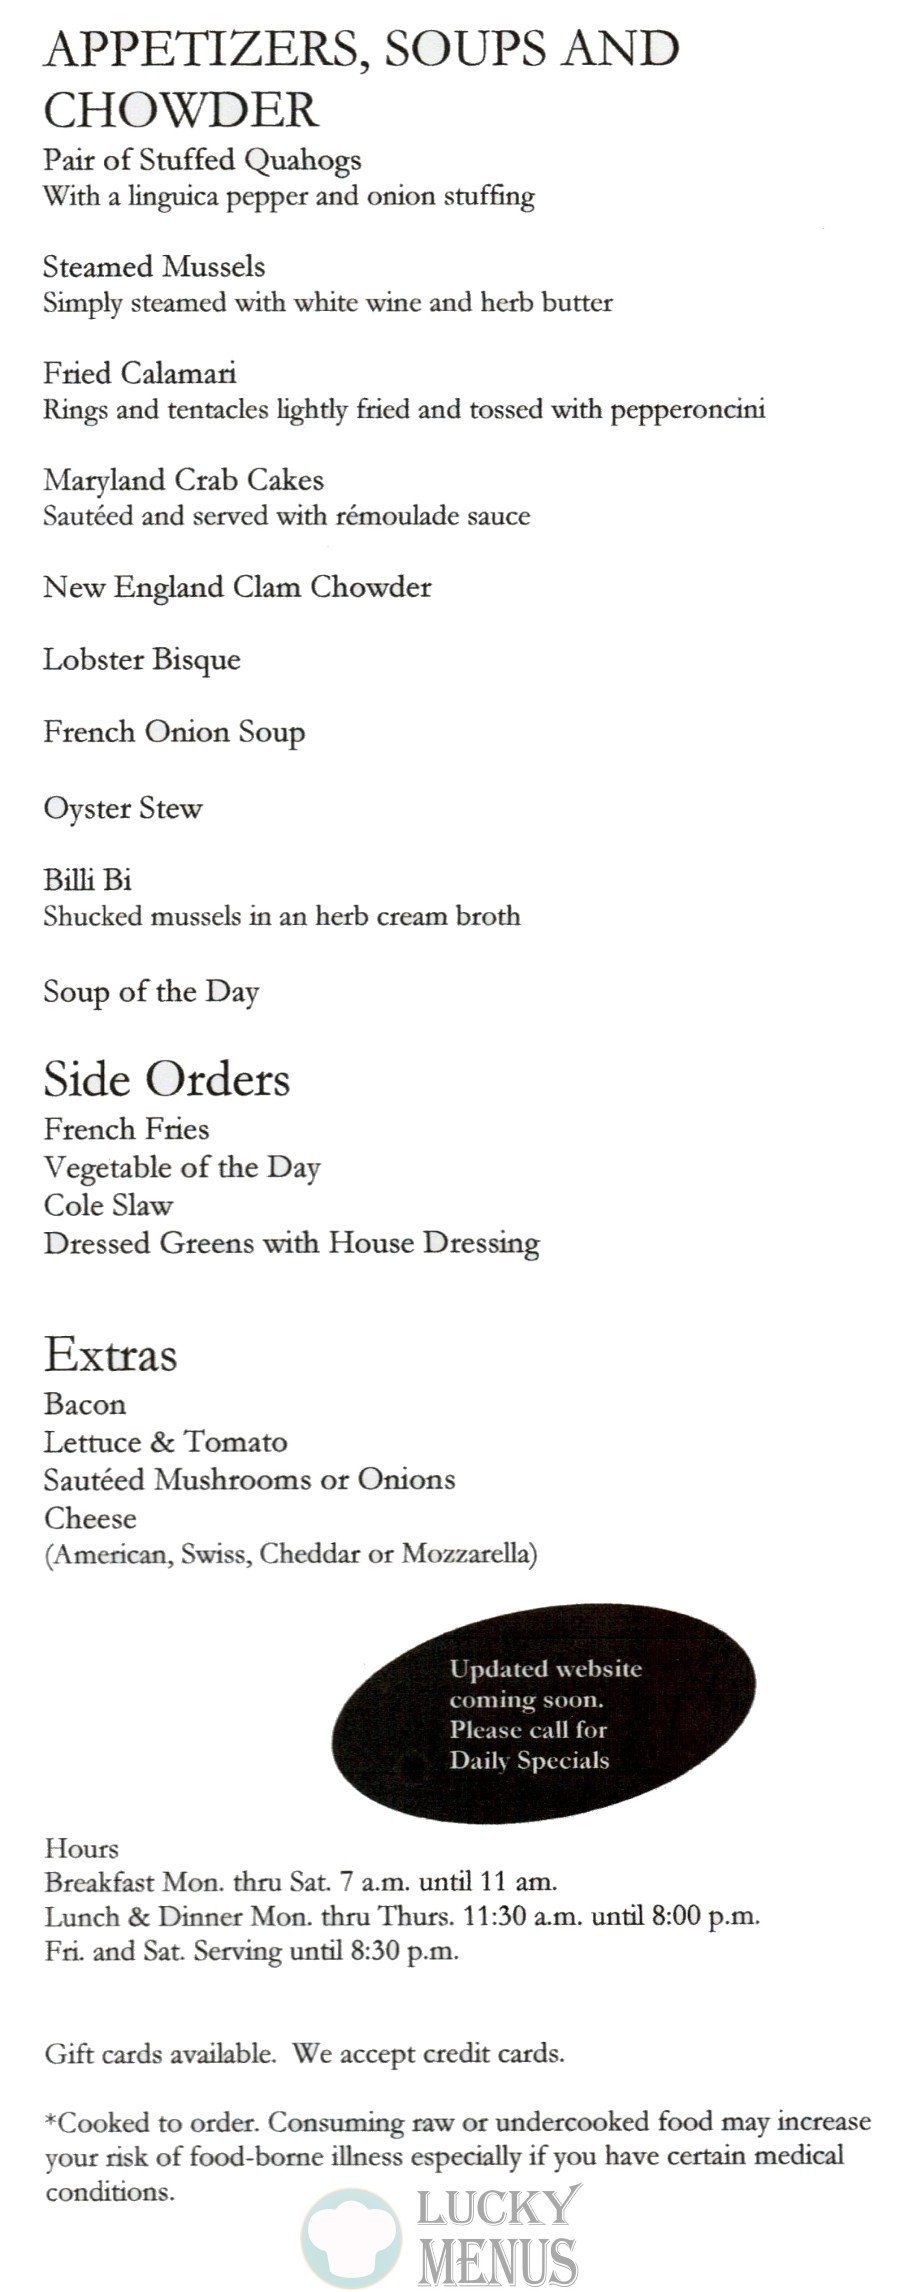 Marguerite's Take Out Menu - Appetizers, Soups, and Chowder